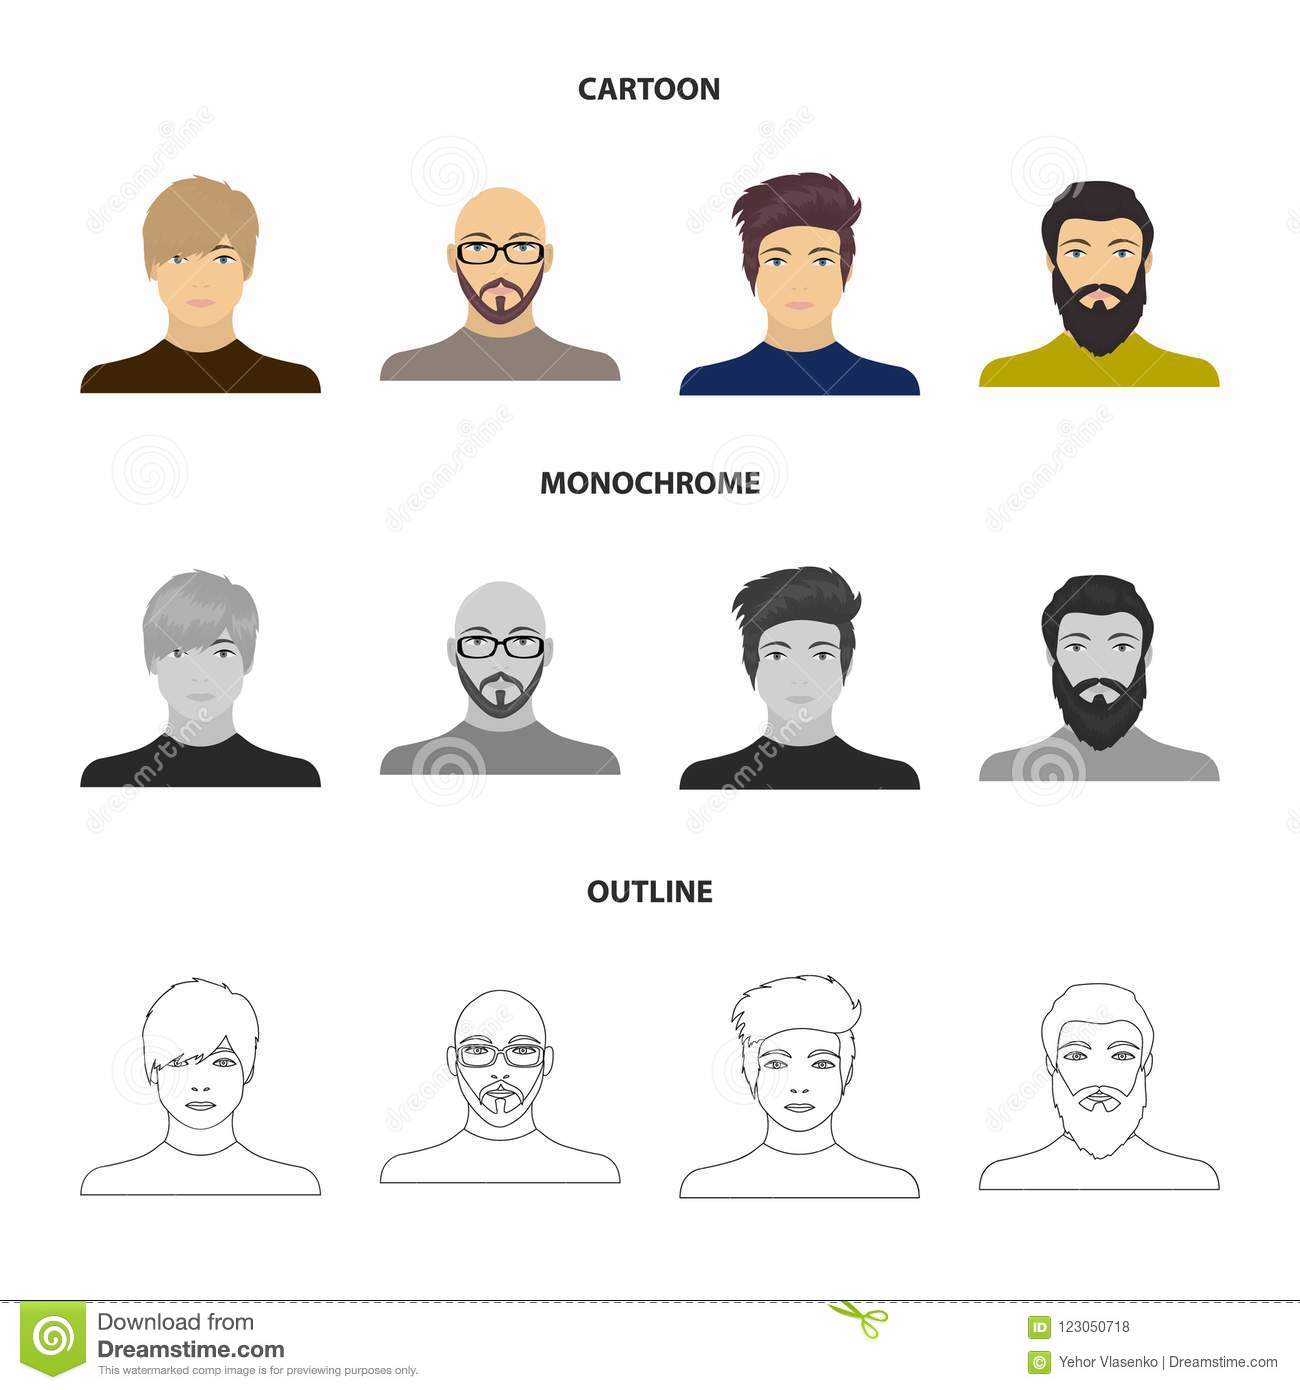 The face of a Bald man with glasses and a beard, a bearded man, the appearance of a guy with a hairdo. Face and